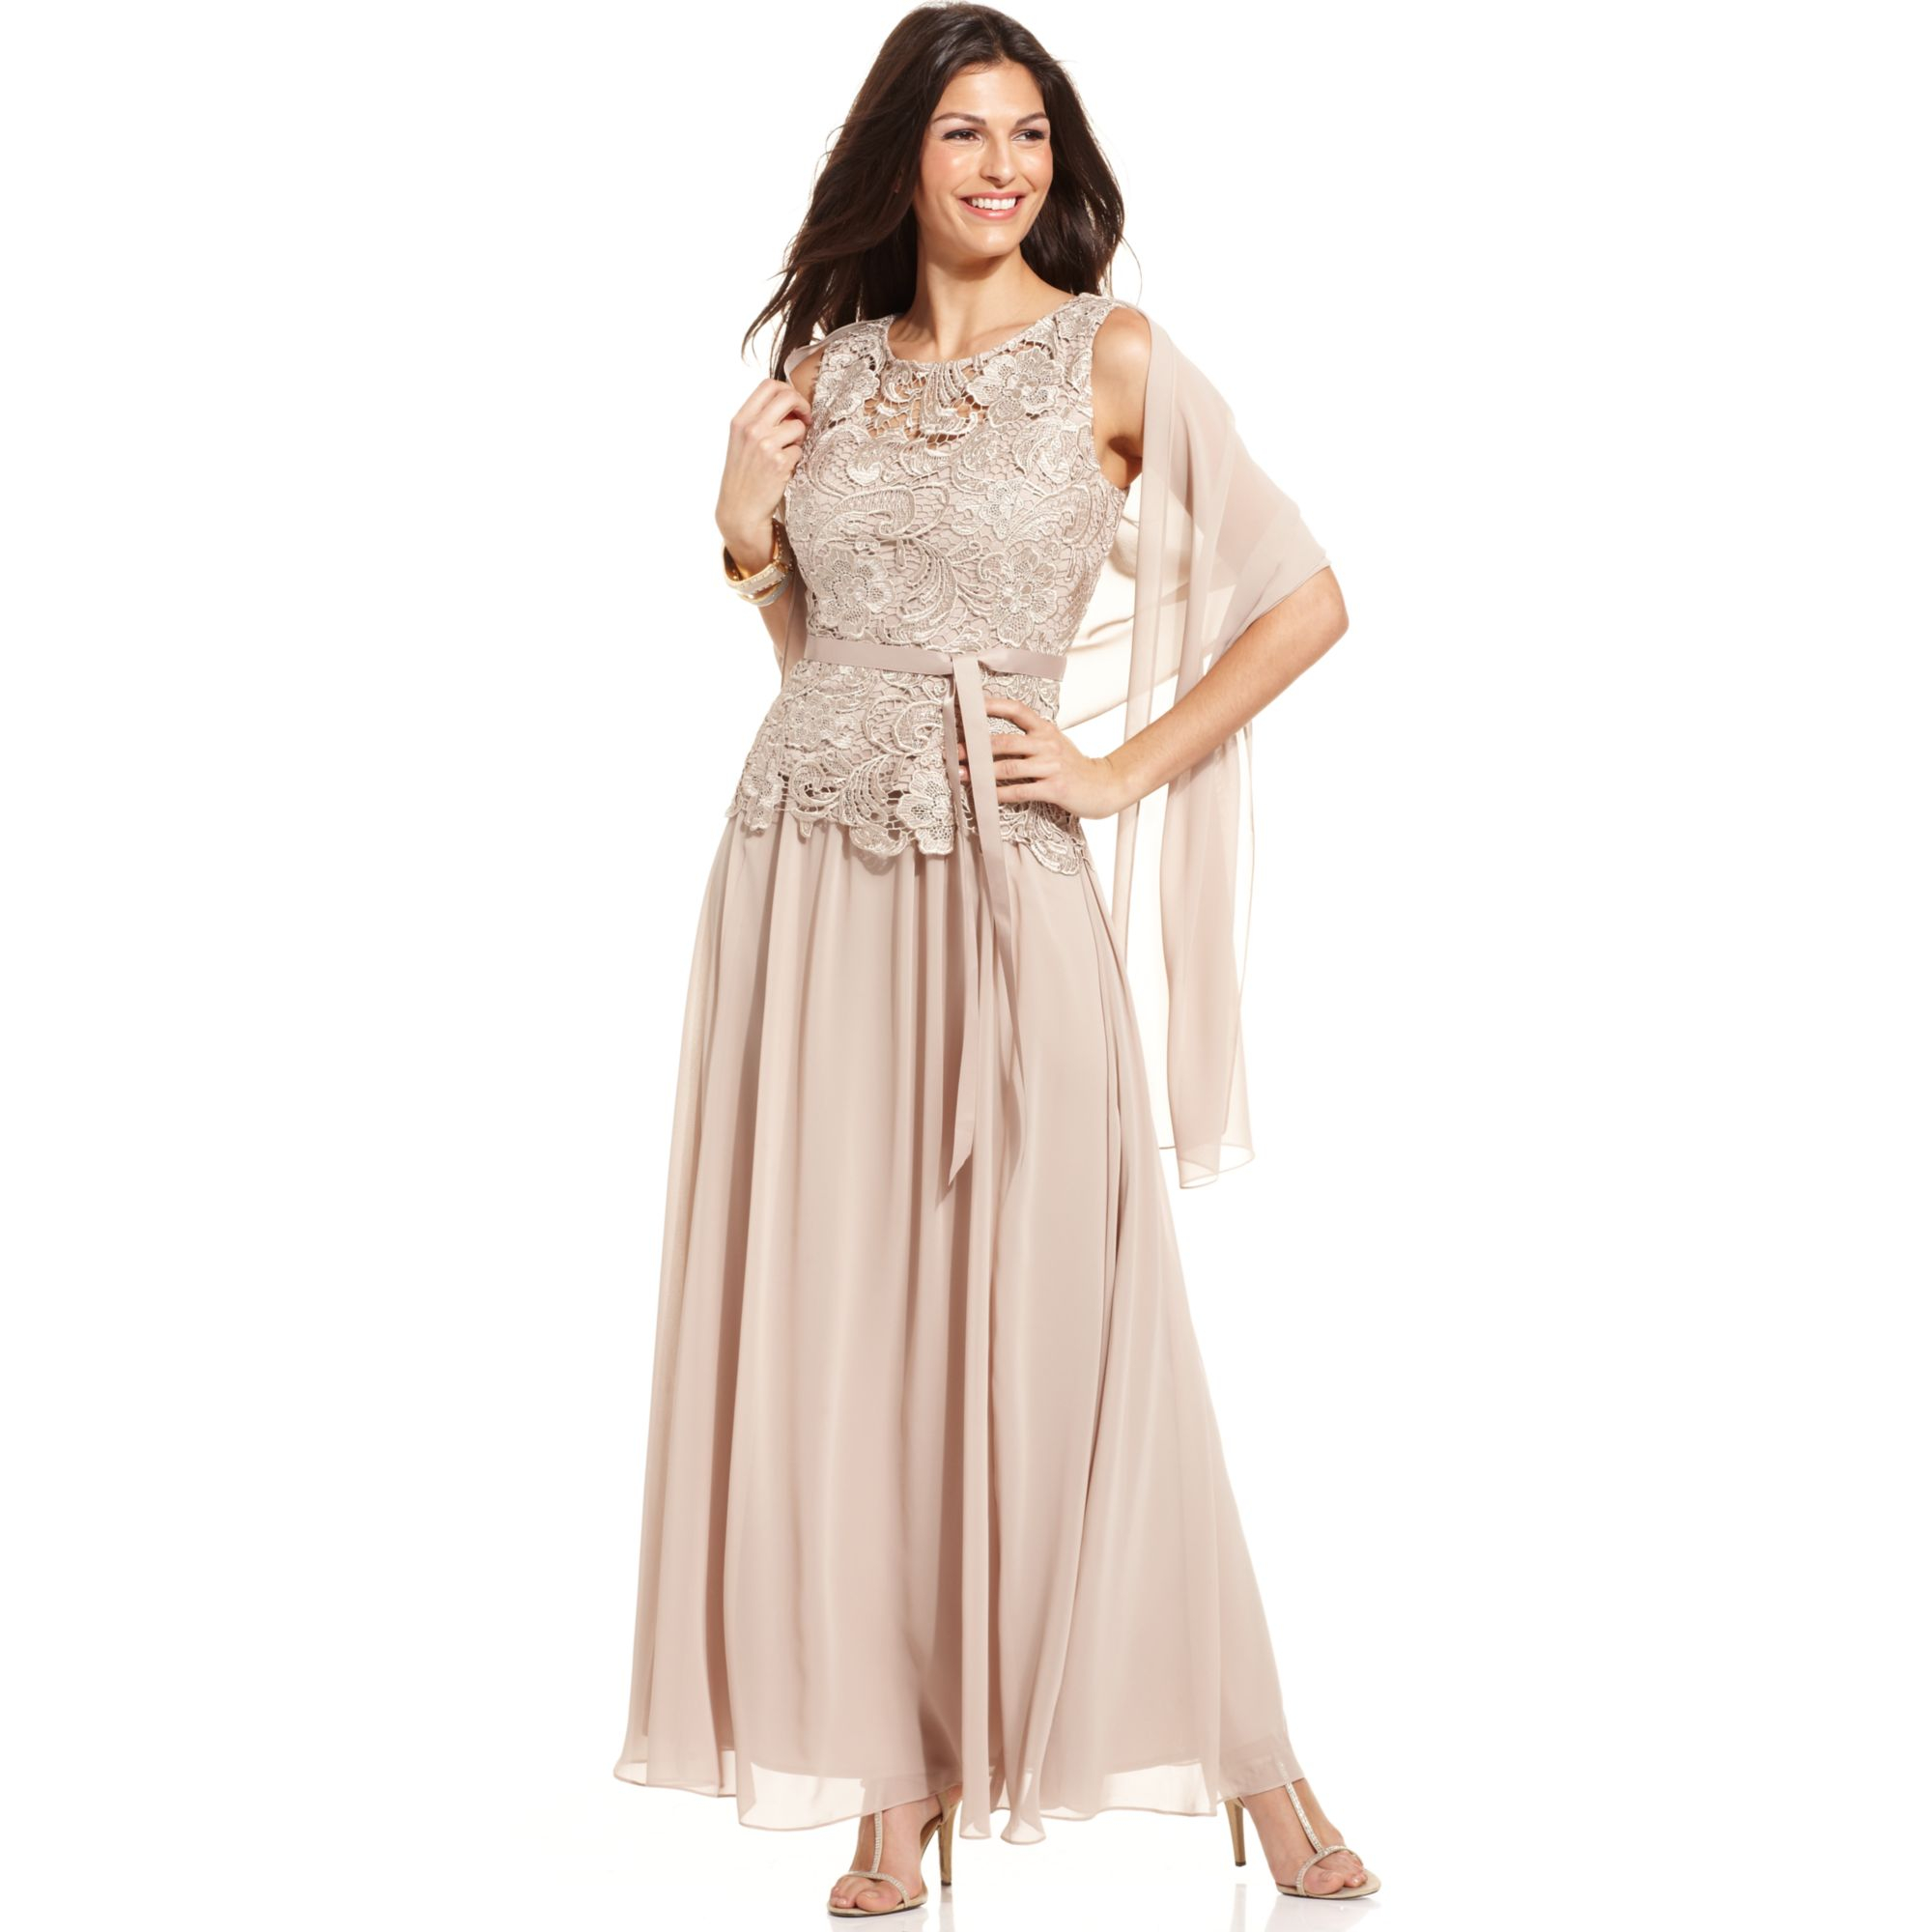 Lyst - Alex Evenings Petite Sleeveless Lace Belted Dress and Shawl ...